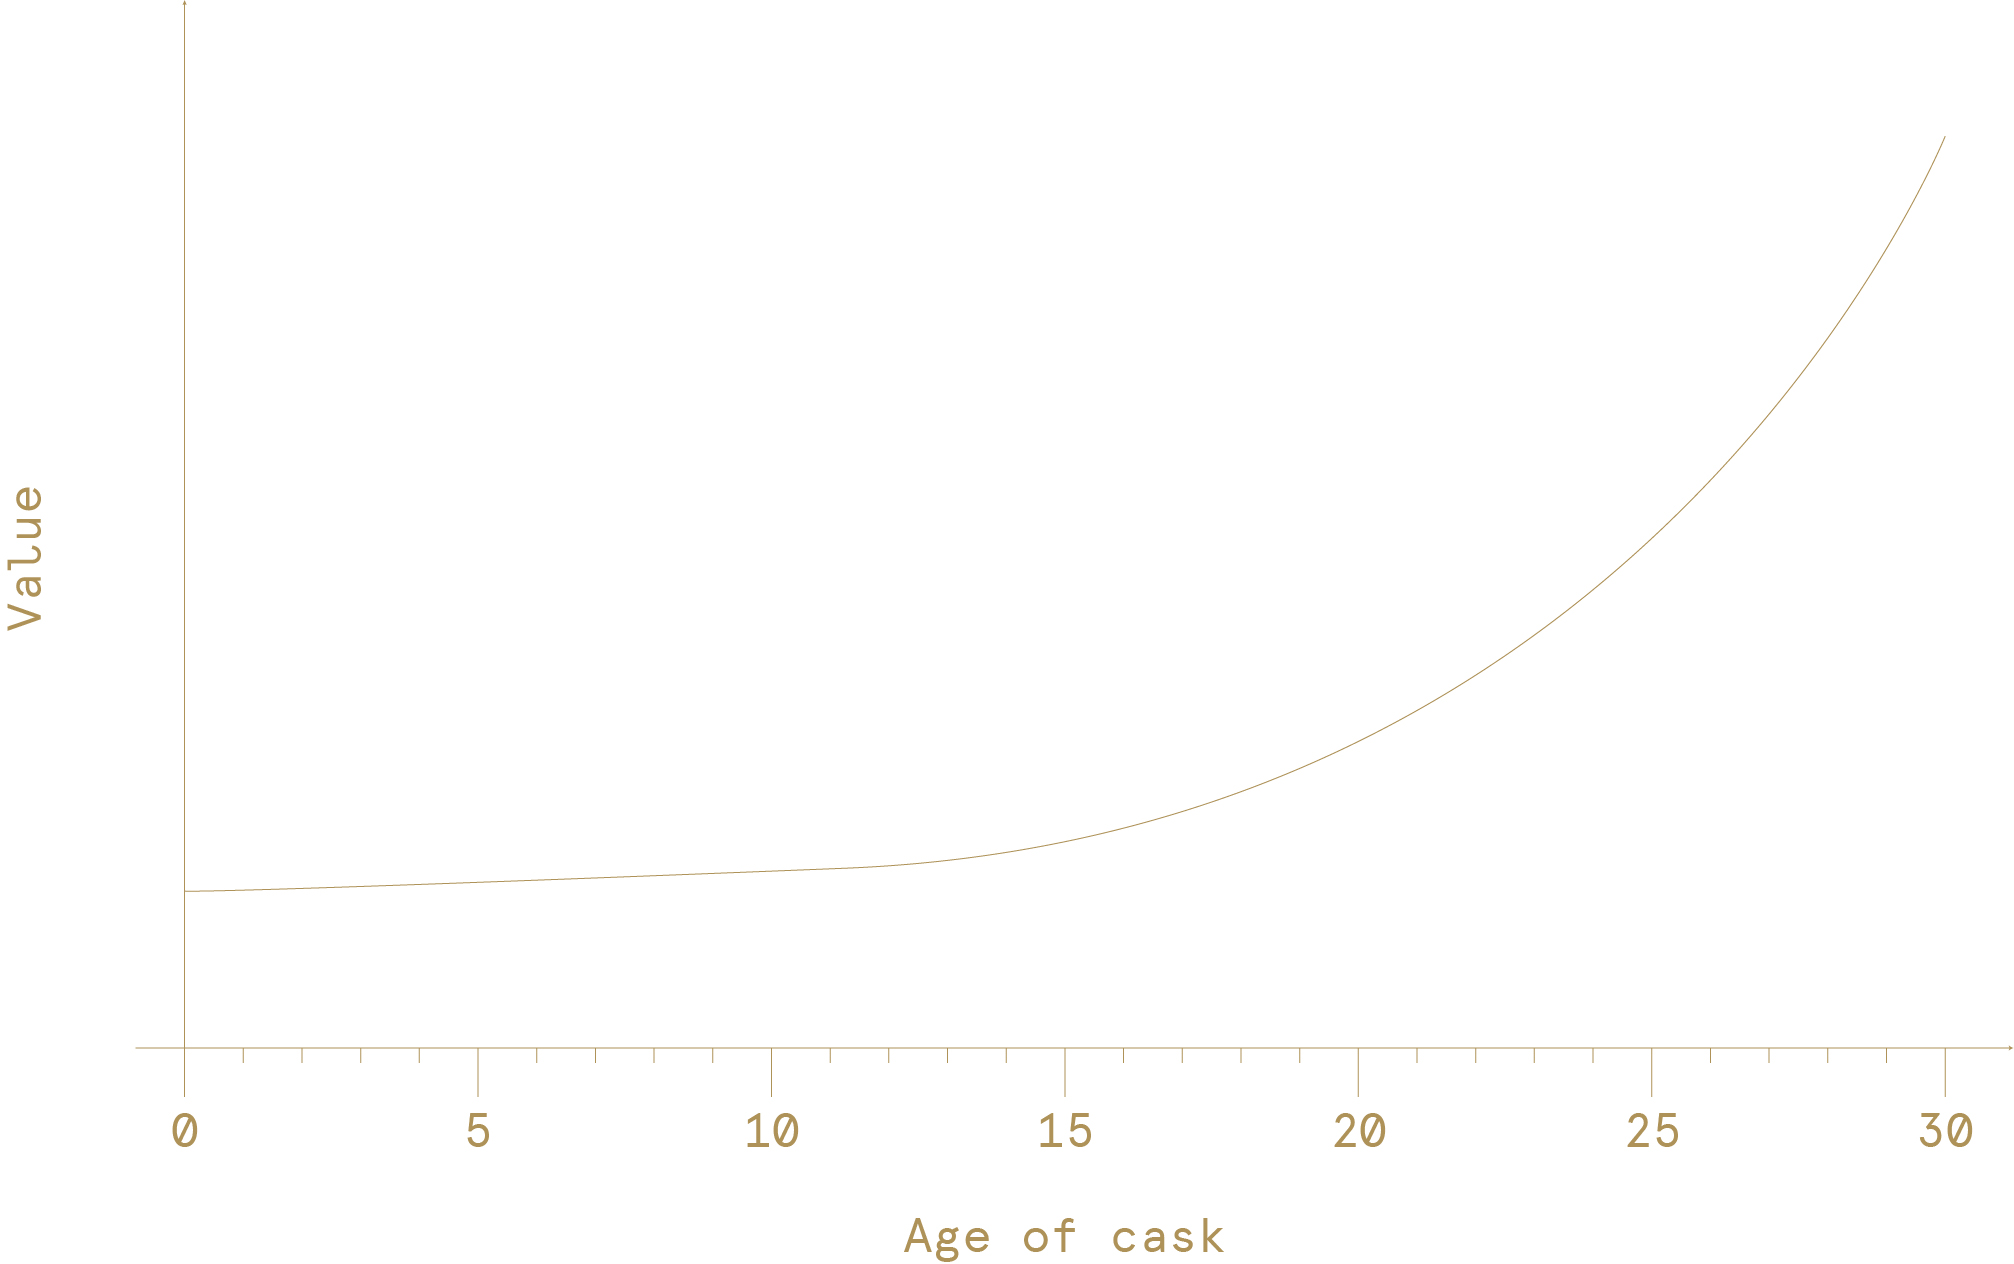 GRAPH 1: a representation of how the value of a cask increases with age